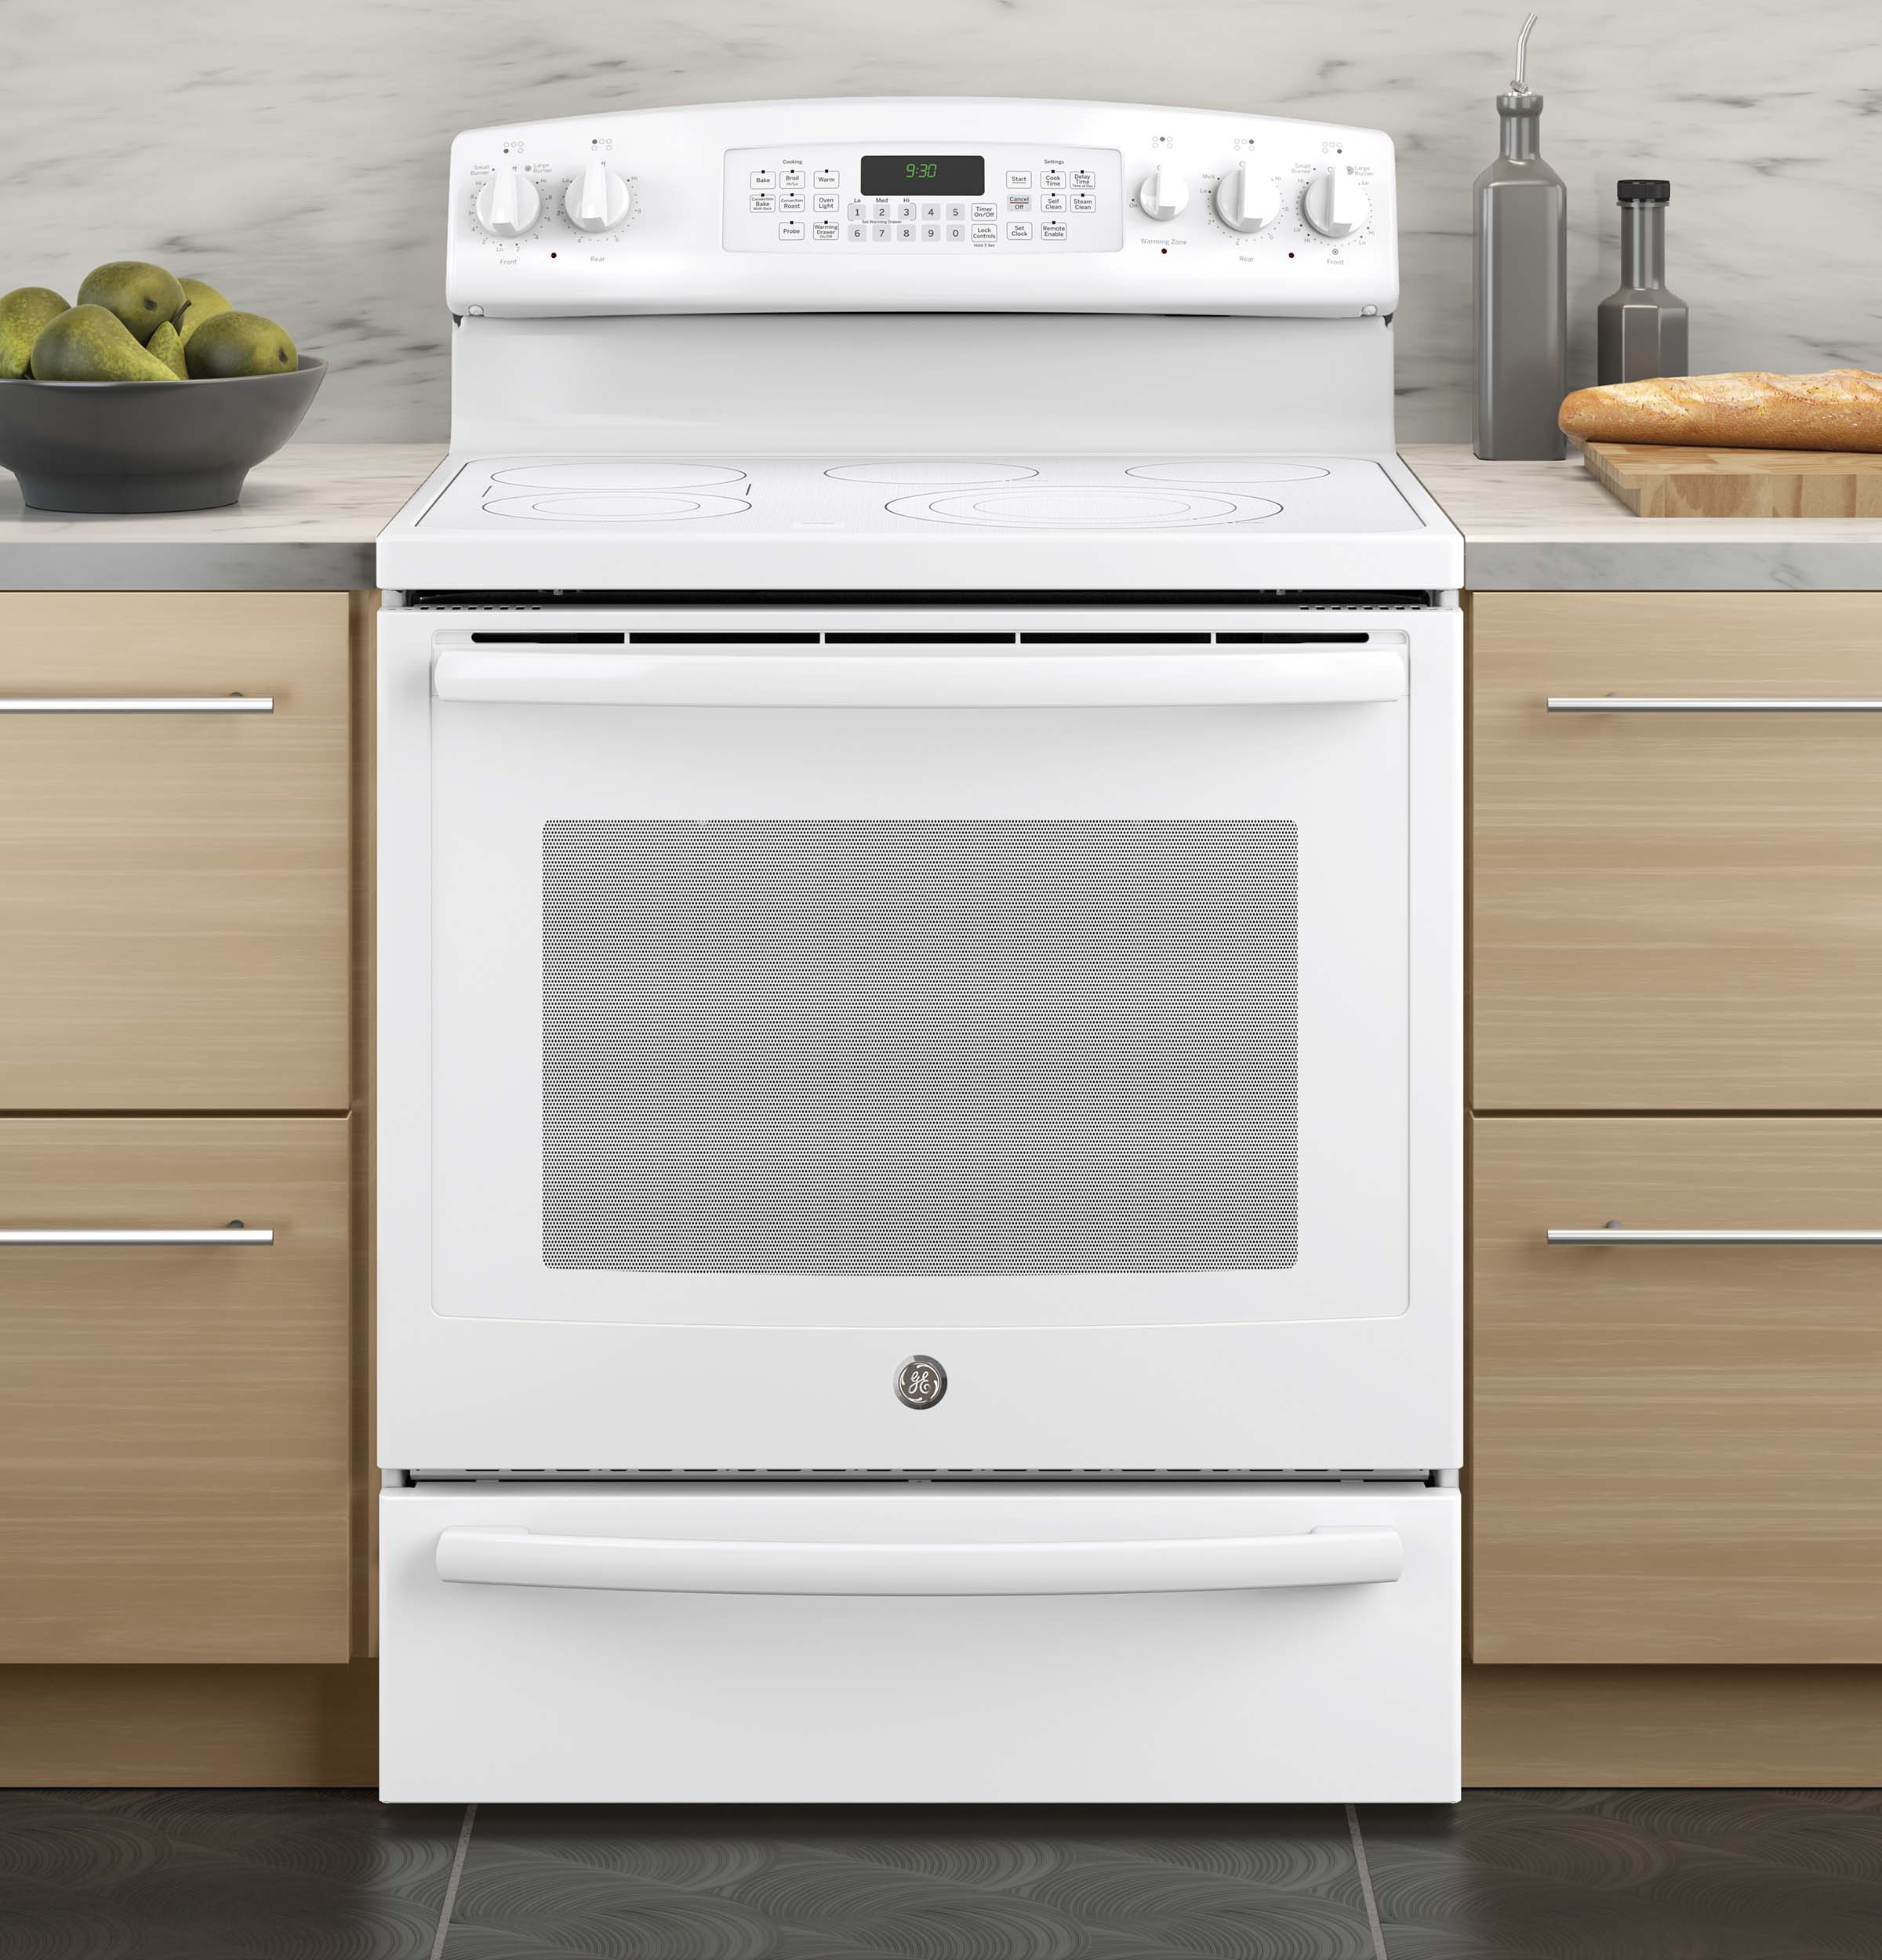 GE Profile 5.3 cu. ft. Free-Standing Electric Convection Range w/ Warming Drawer - White